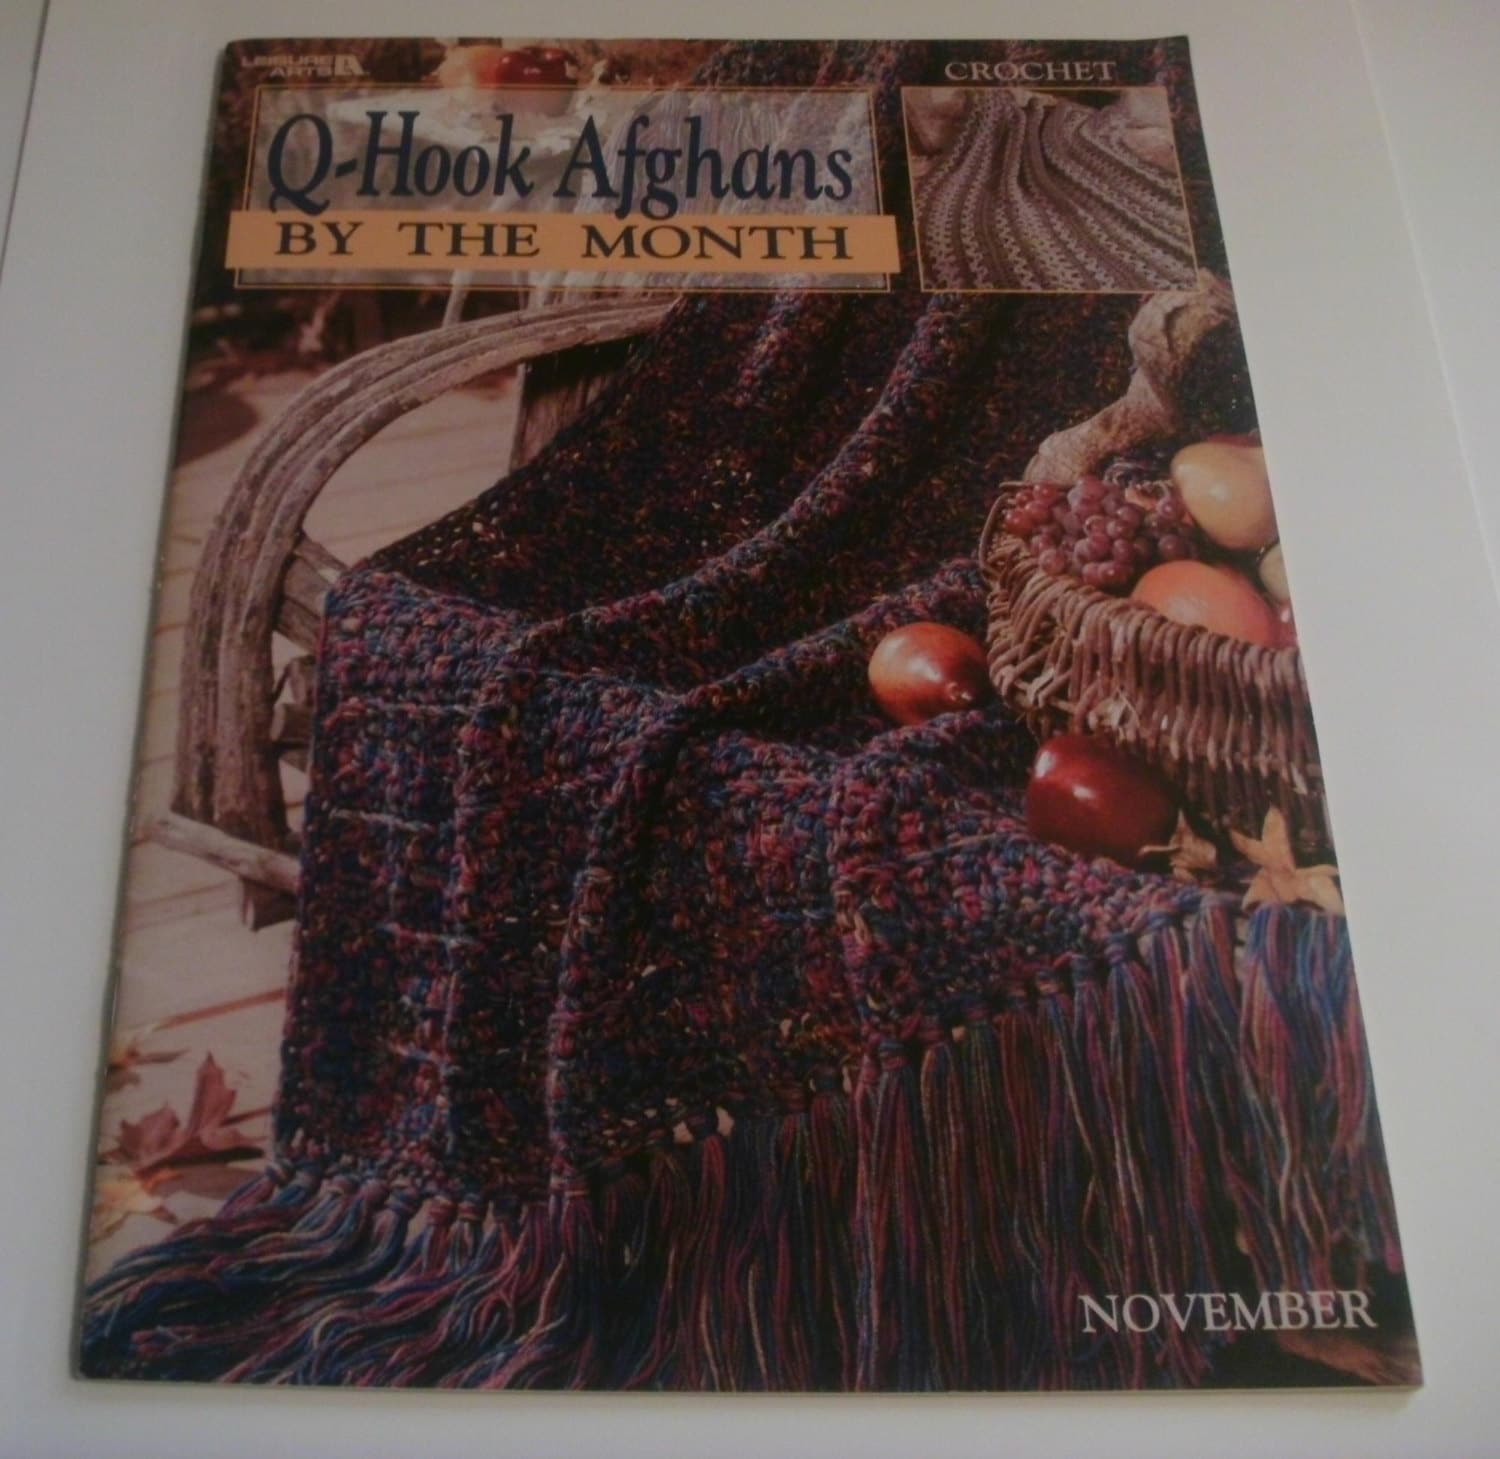 Crochet Afghan Patterns With Q Hook : Q-Hook Crochet Afghan Pattern Book